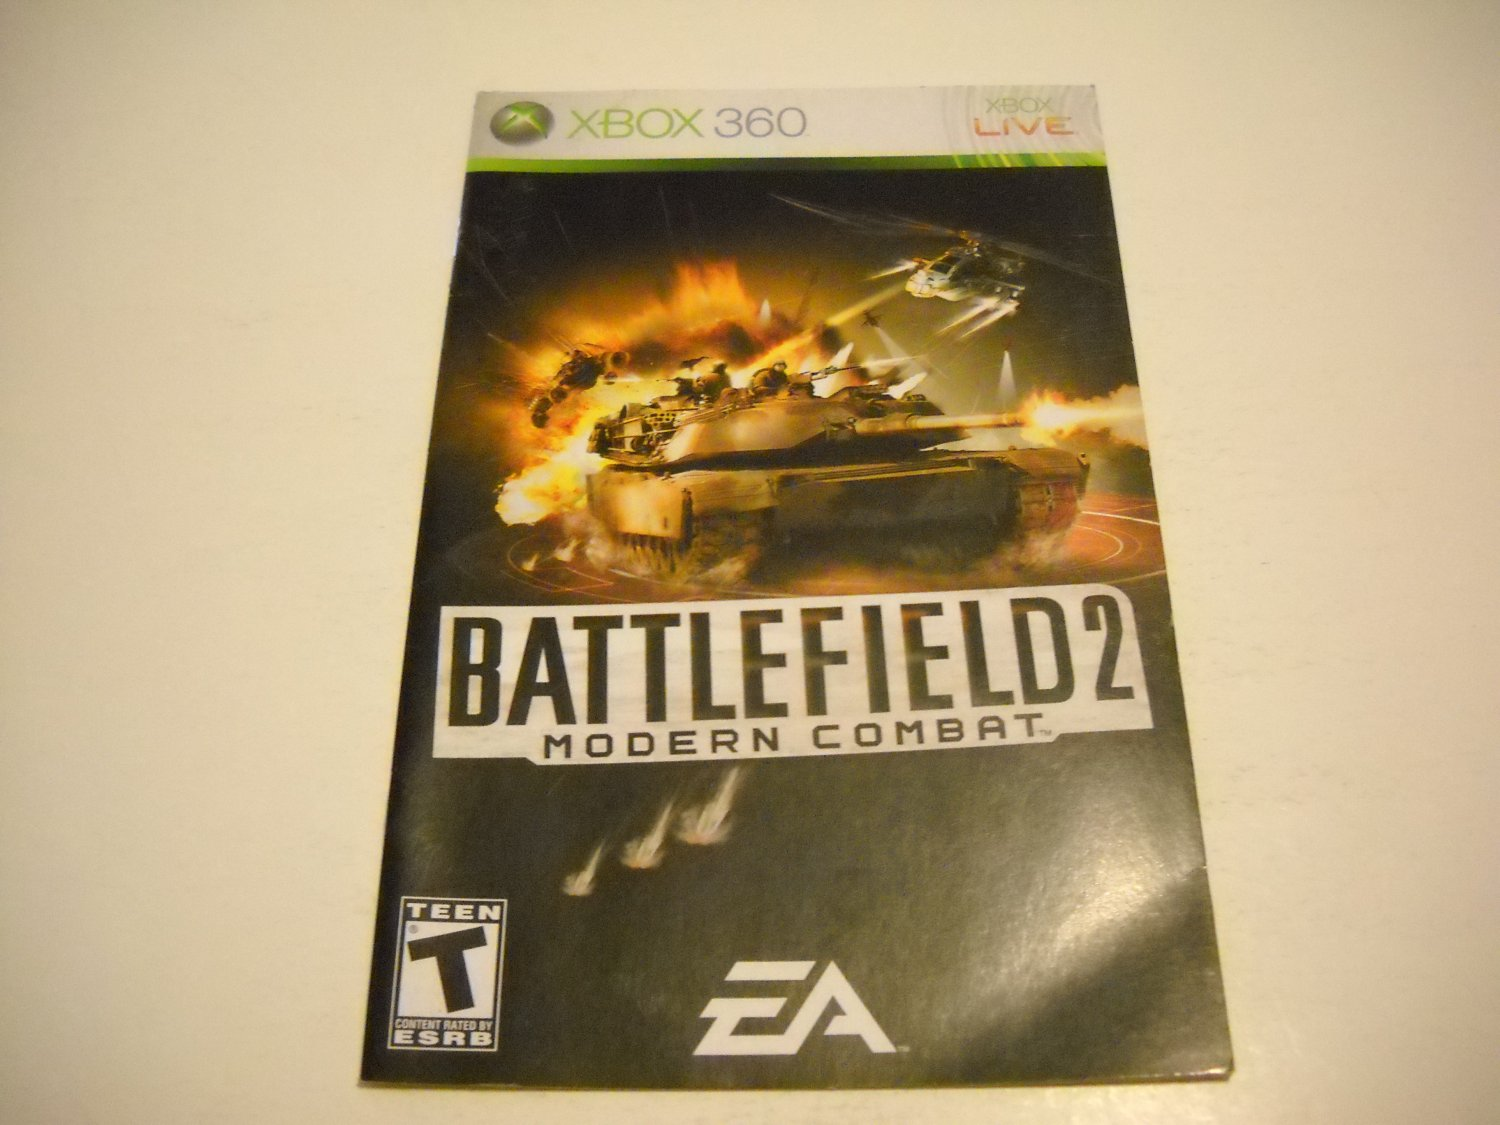 Manual ONLY ~  for Battlefield 2 Modern Combat   - Xbox 360 Instruction Booklet